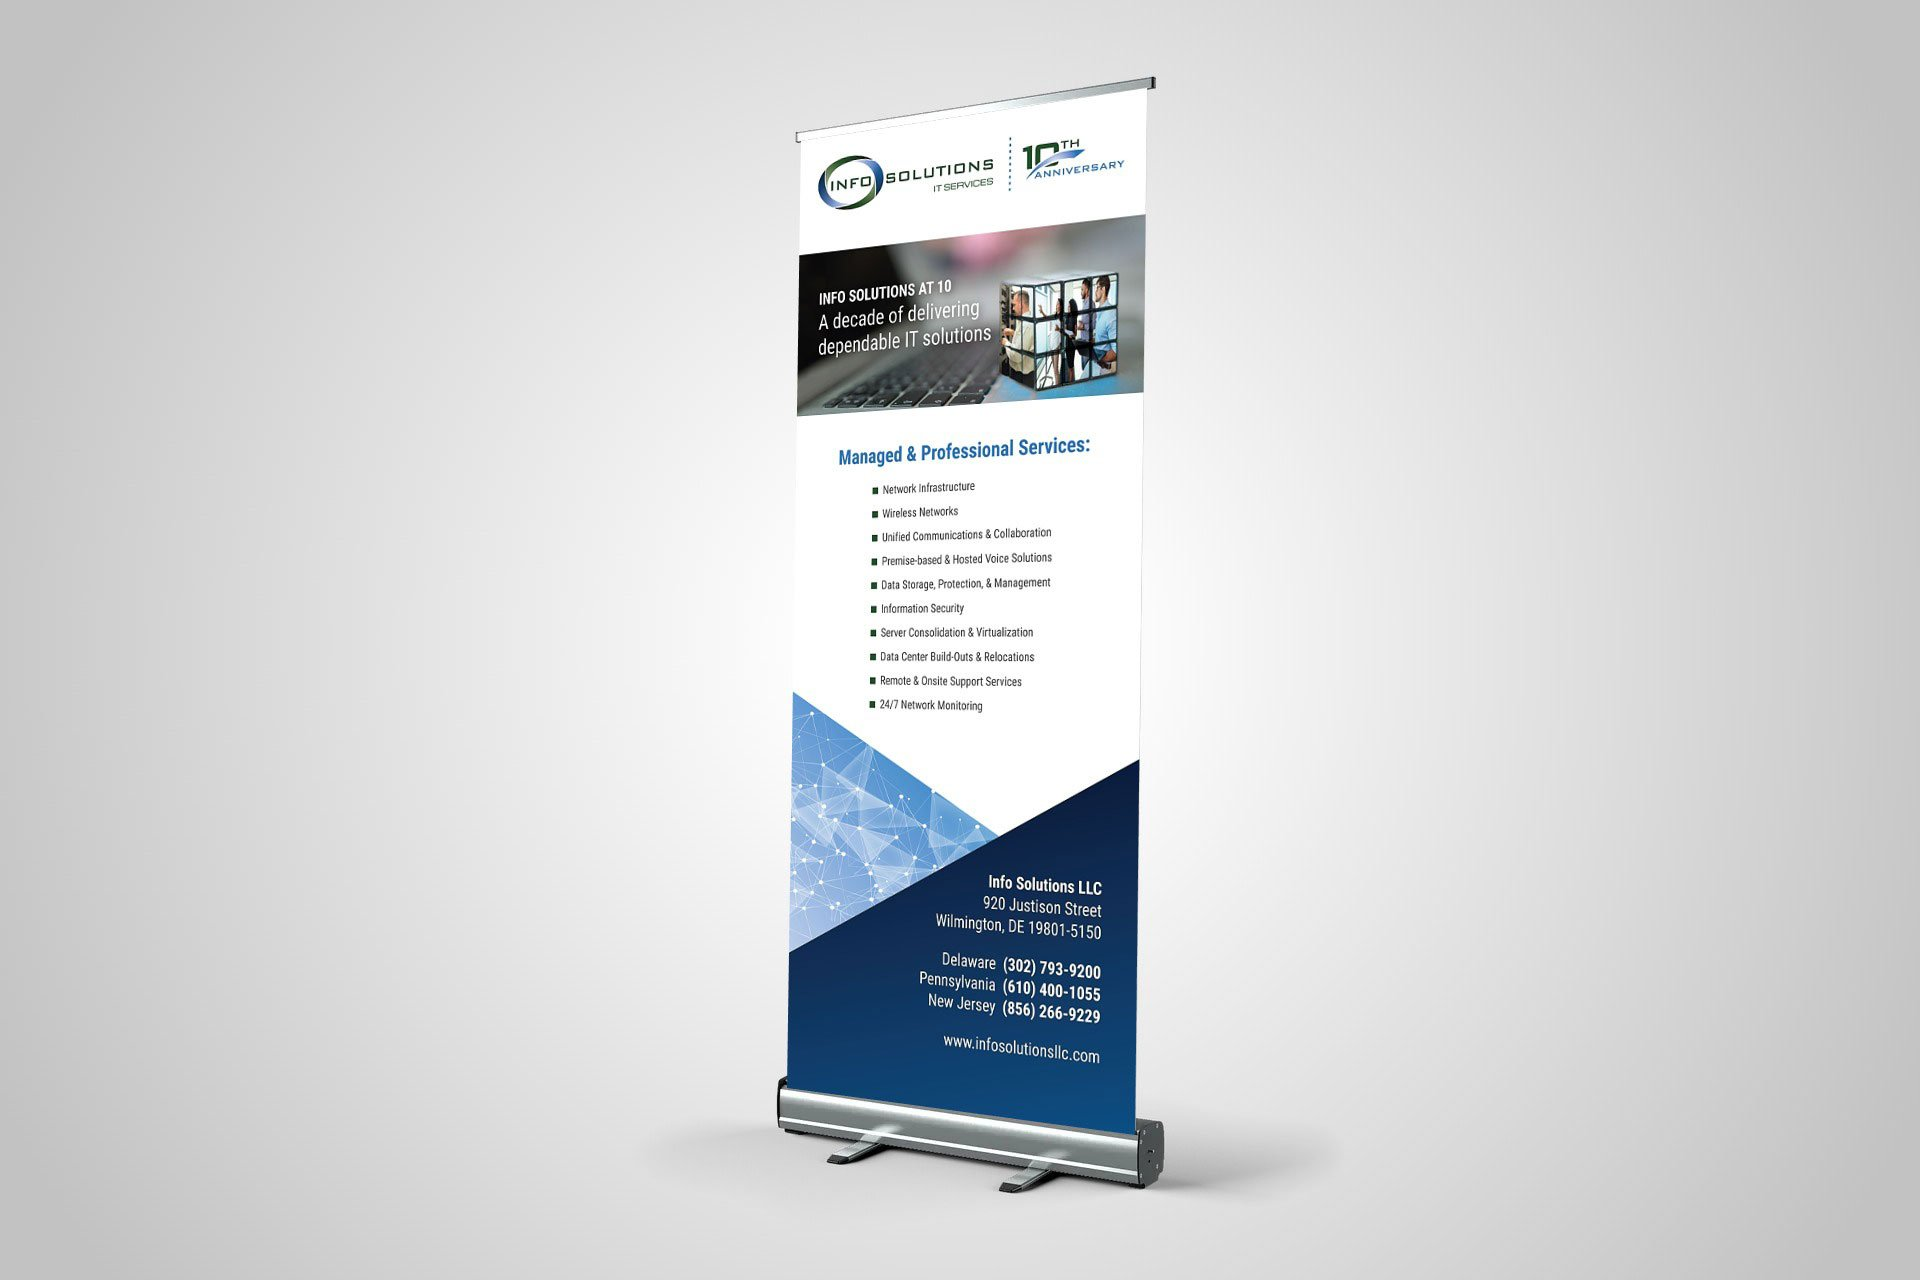 Blue Blaze designed display banner for Info Solutions